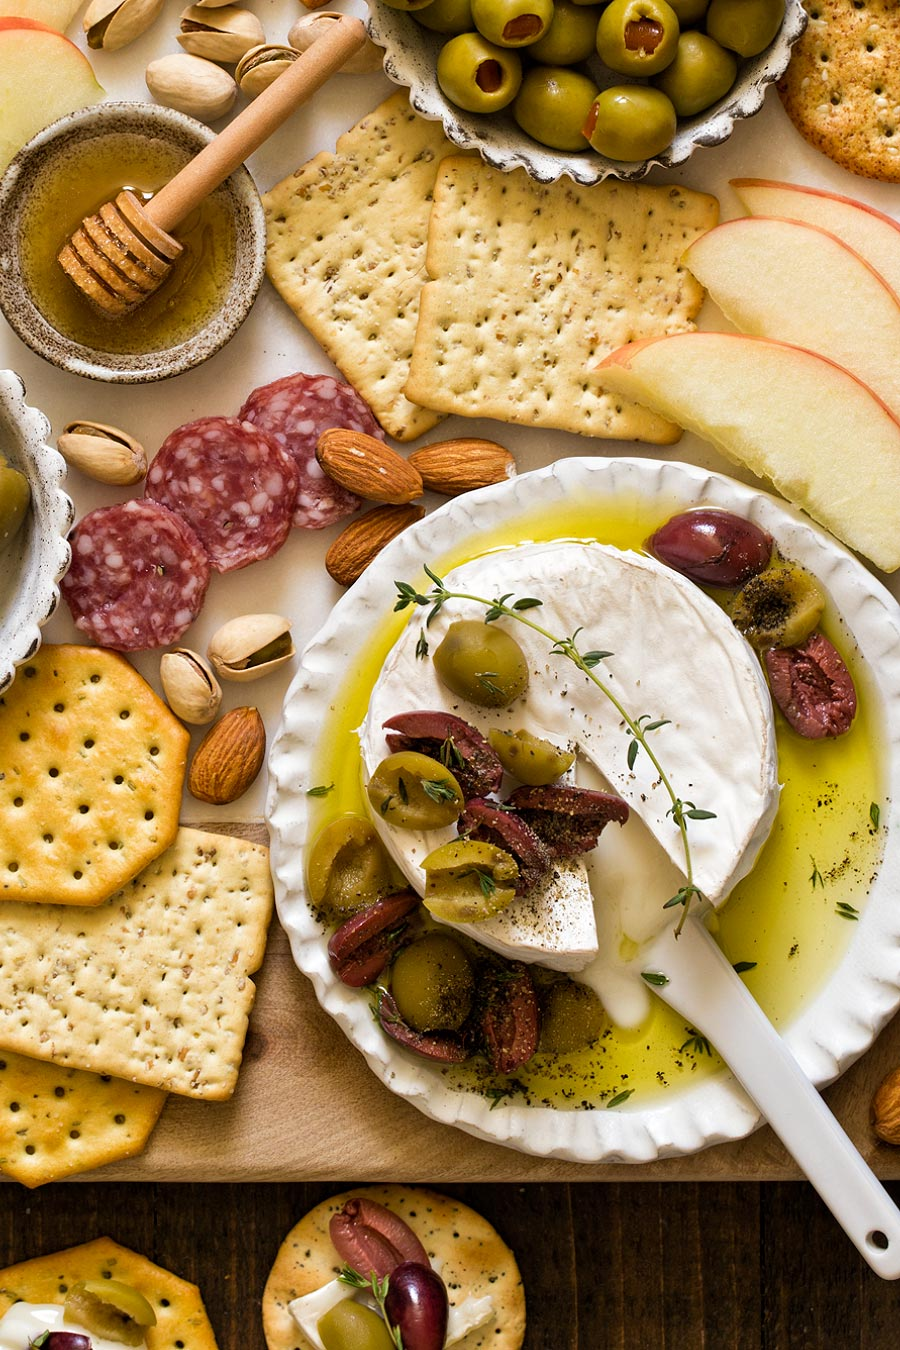 Olive Baked Brie by Carla Cardello Food Photographer